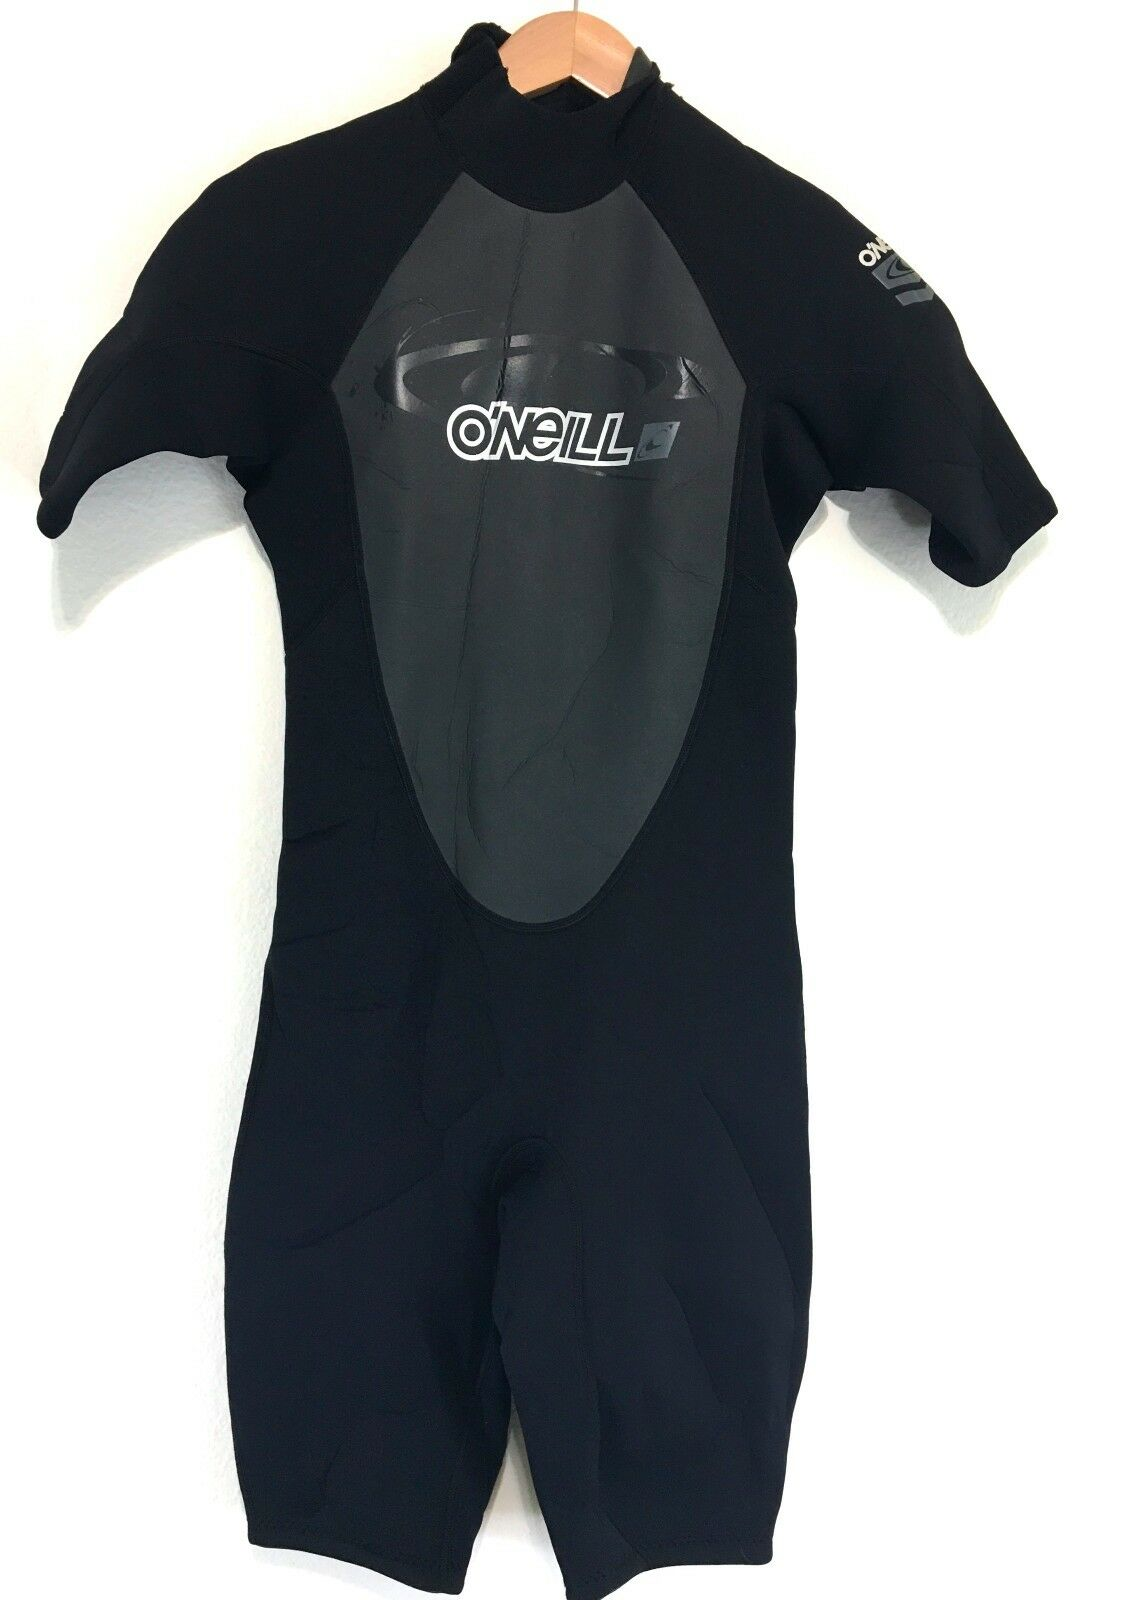 O'Neill Mens Shorty Spring Wetsuit   Size Small S Reactor 2mm  come to choose your own sports style